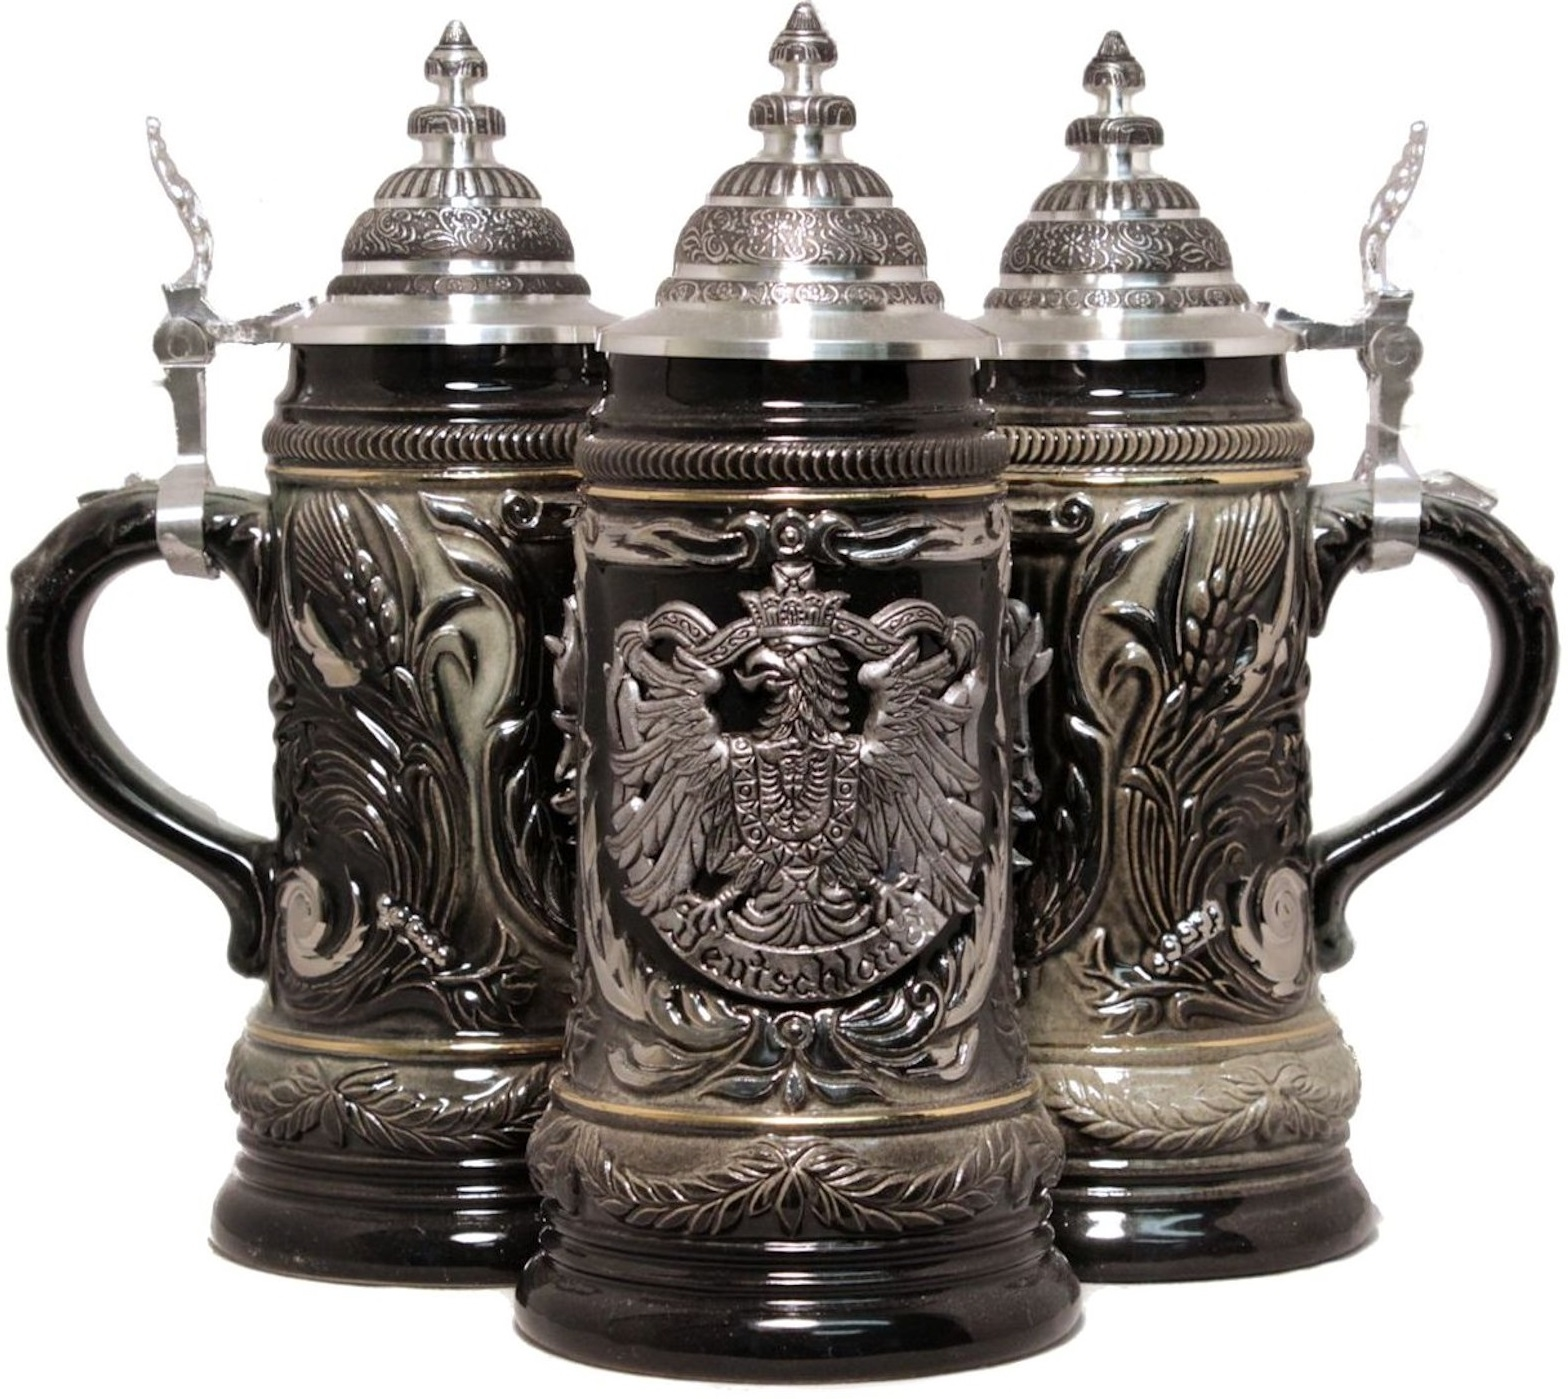 LE German Beer Stein with Pewter Eagle Relief